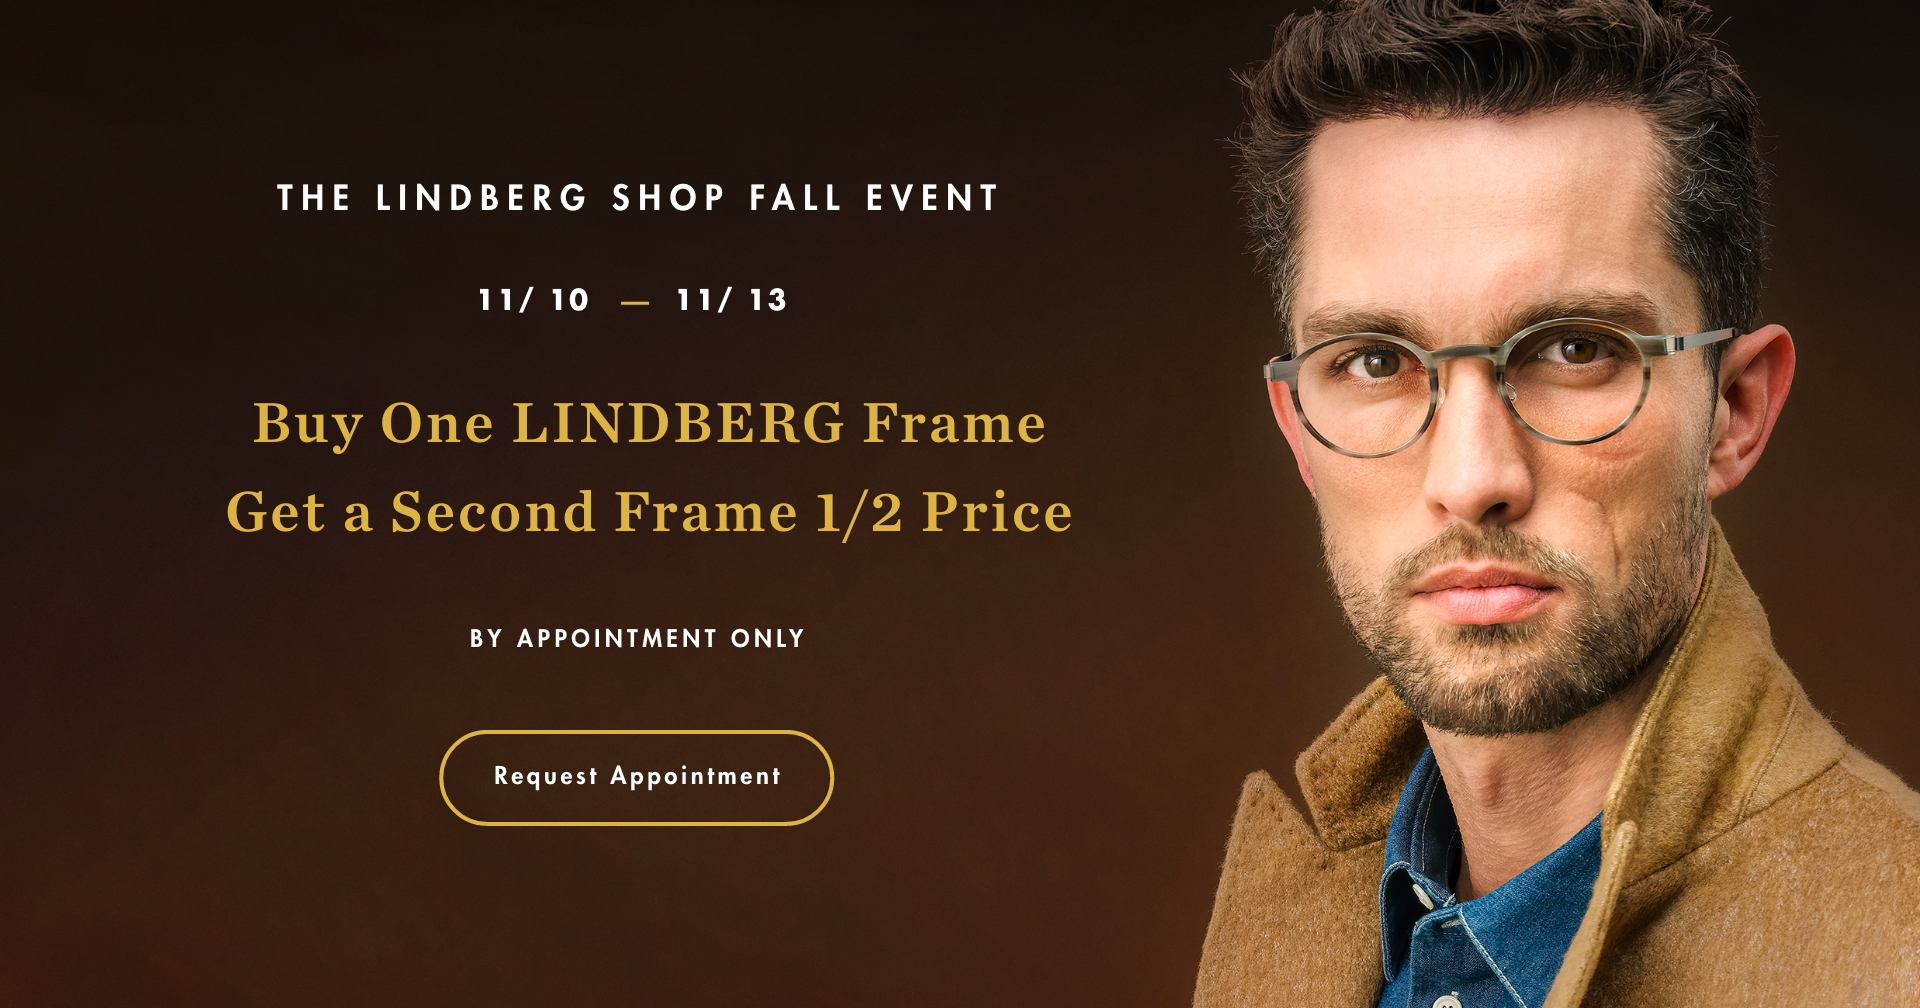 The LINDBERG SHOP fall event 11/10 - 11/13. Buy One LINDBERG frame ,get a second frame 1/2 price. By appointment only.